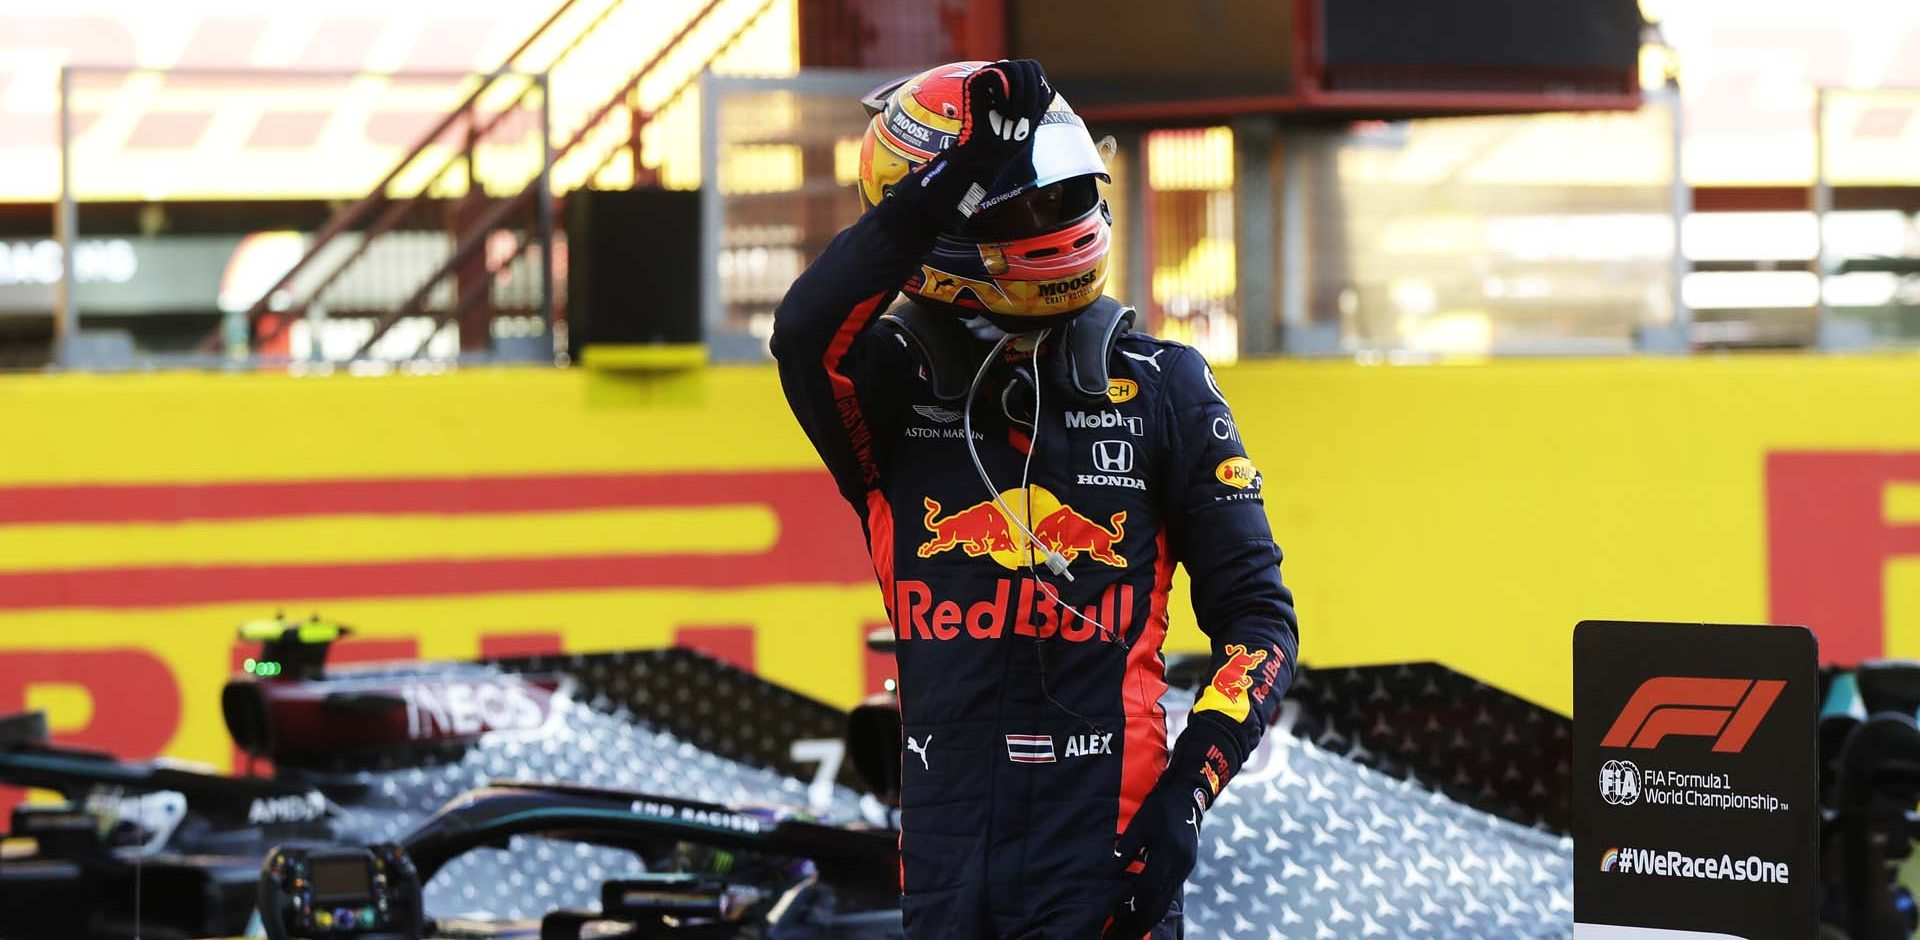 SCARPERIA, ITALY - SEPTEMBER 13: Third placed Alexander Albon of Thailand and Red Bull Racing celebrates in parc ferme during the F1 Grand Prix of Tuscany at Mugello Circuit on September 13, 2020 in Scarperia, Italy. (Photo by Luca Bruno - Pool/Getty Images)